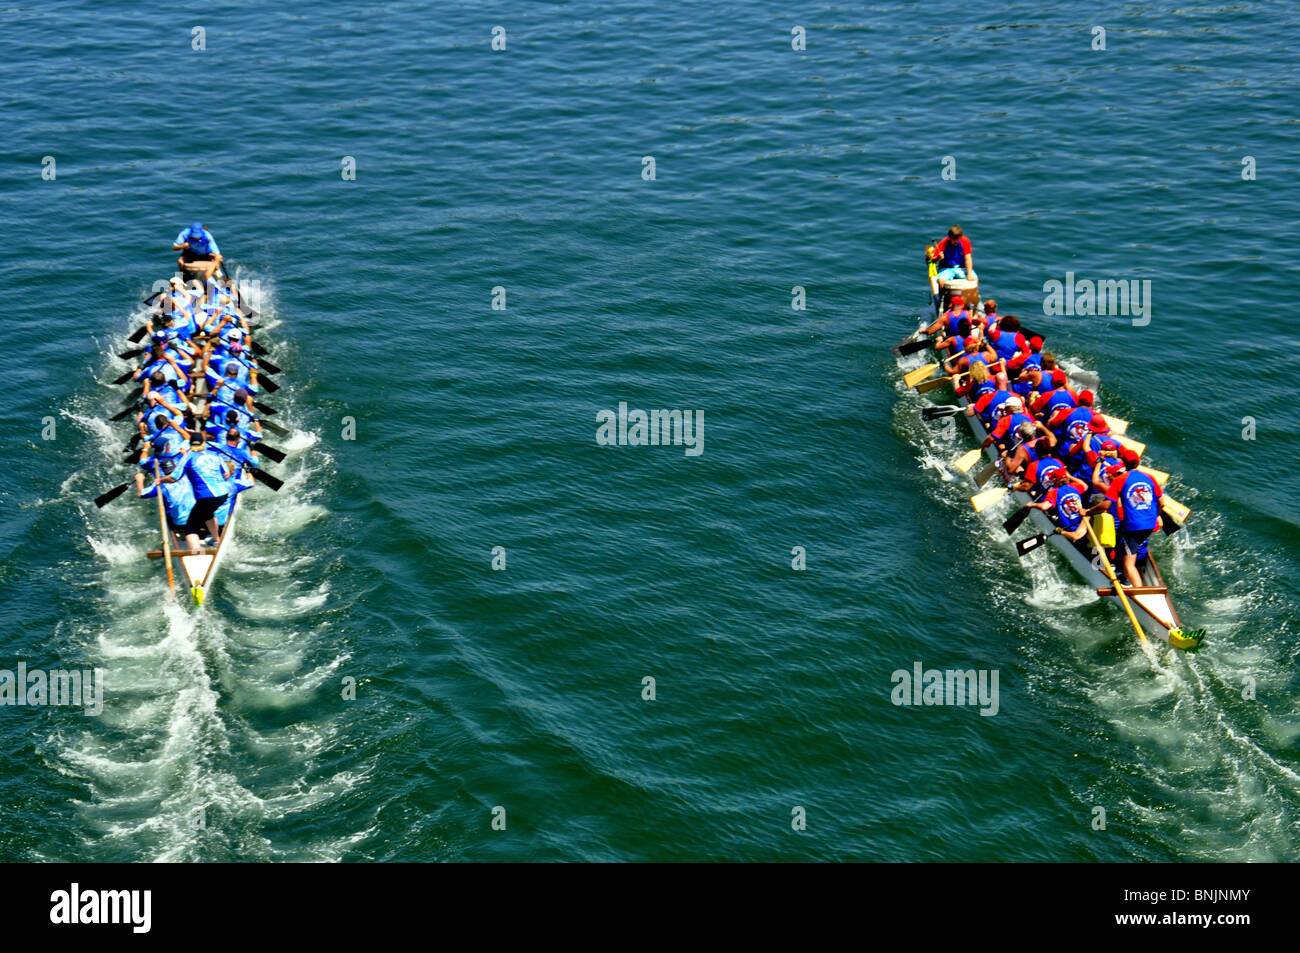 Team Sport Boat China Competition Race Water Healthy Dragonboat Dragon Boat Harbor Harbour River Lake Fast Traditional - Stock Image